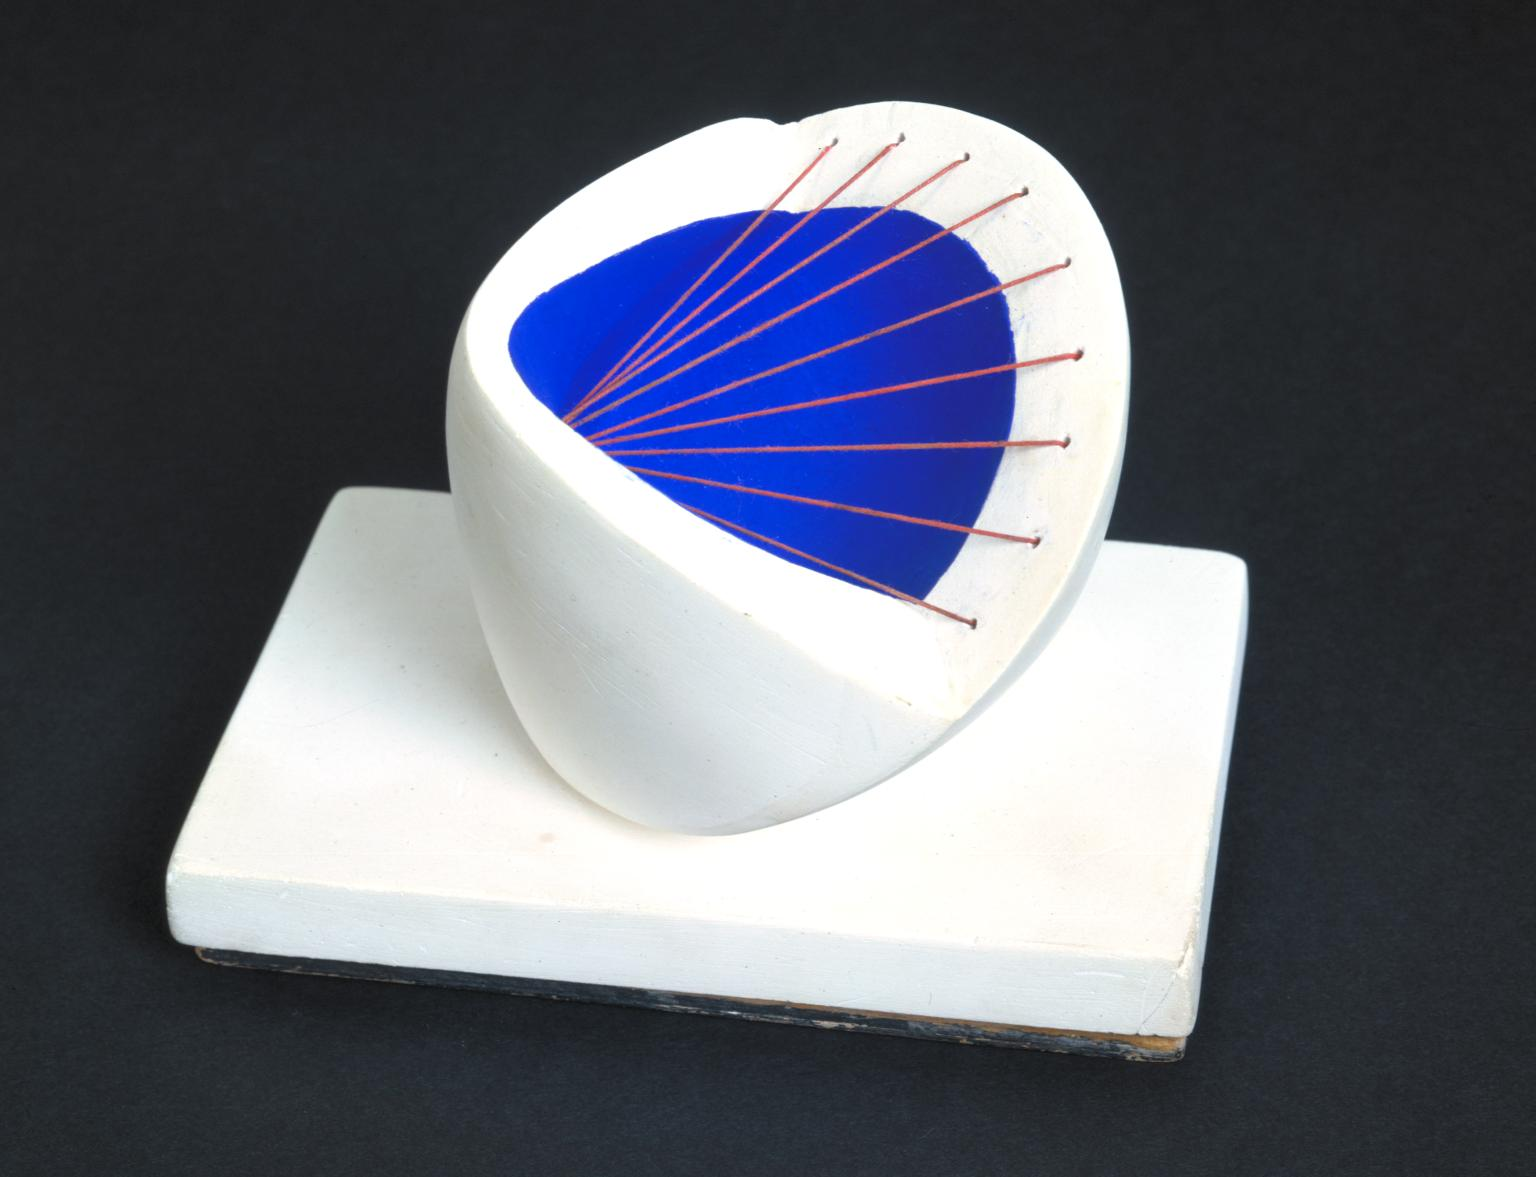 barbara hepworth Sculpture with Colour (Deep Blue and Red)